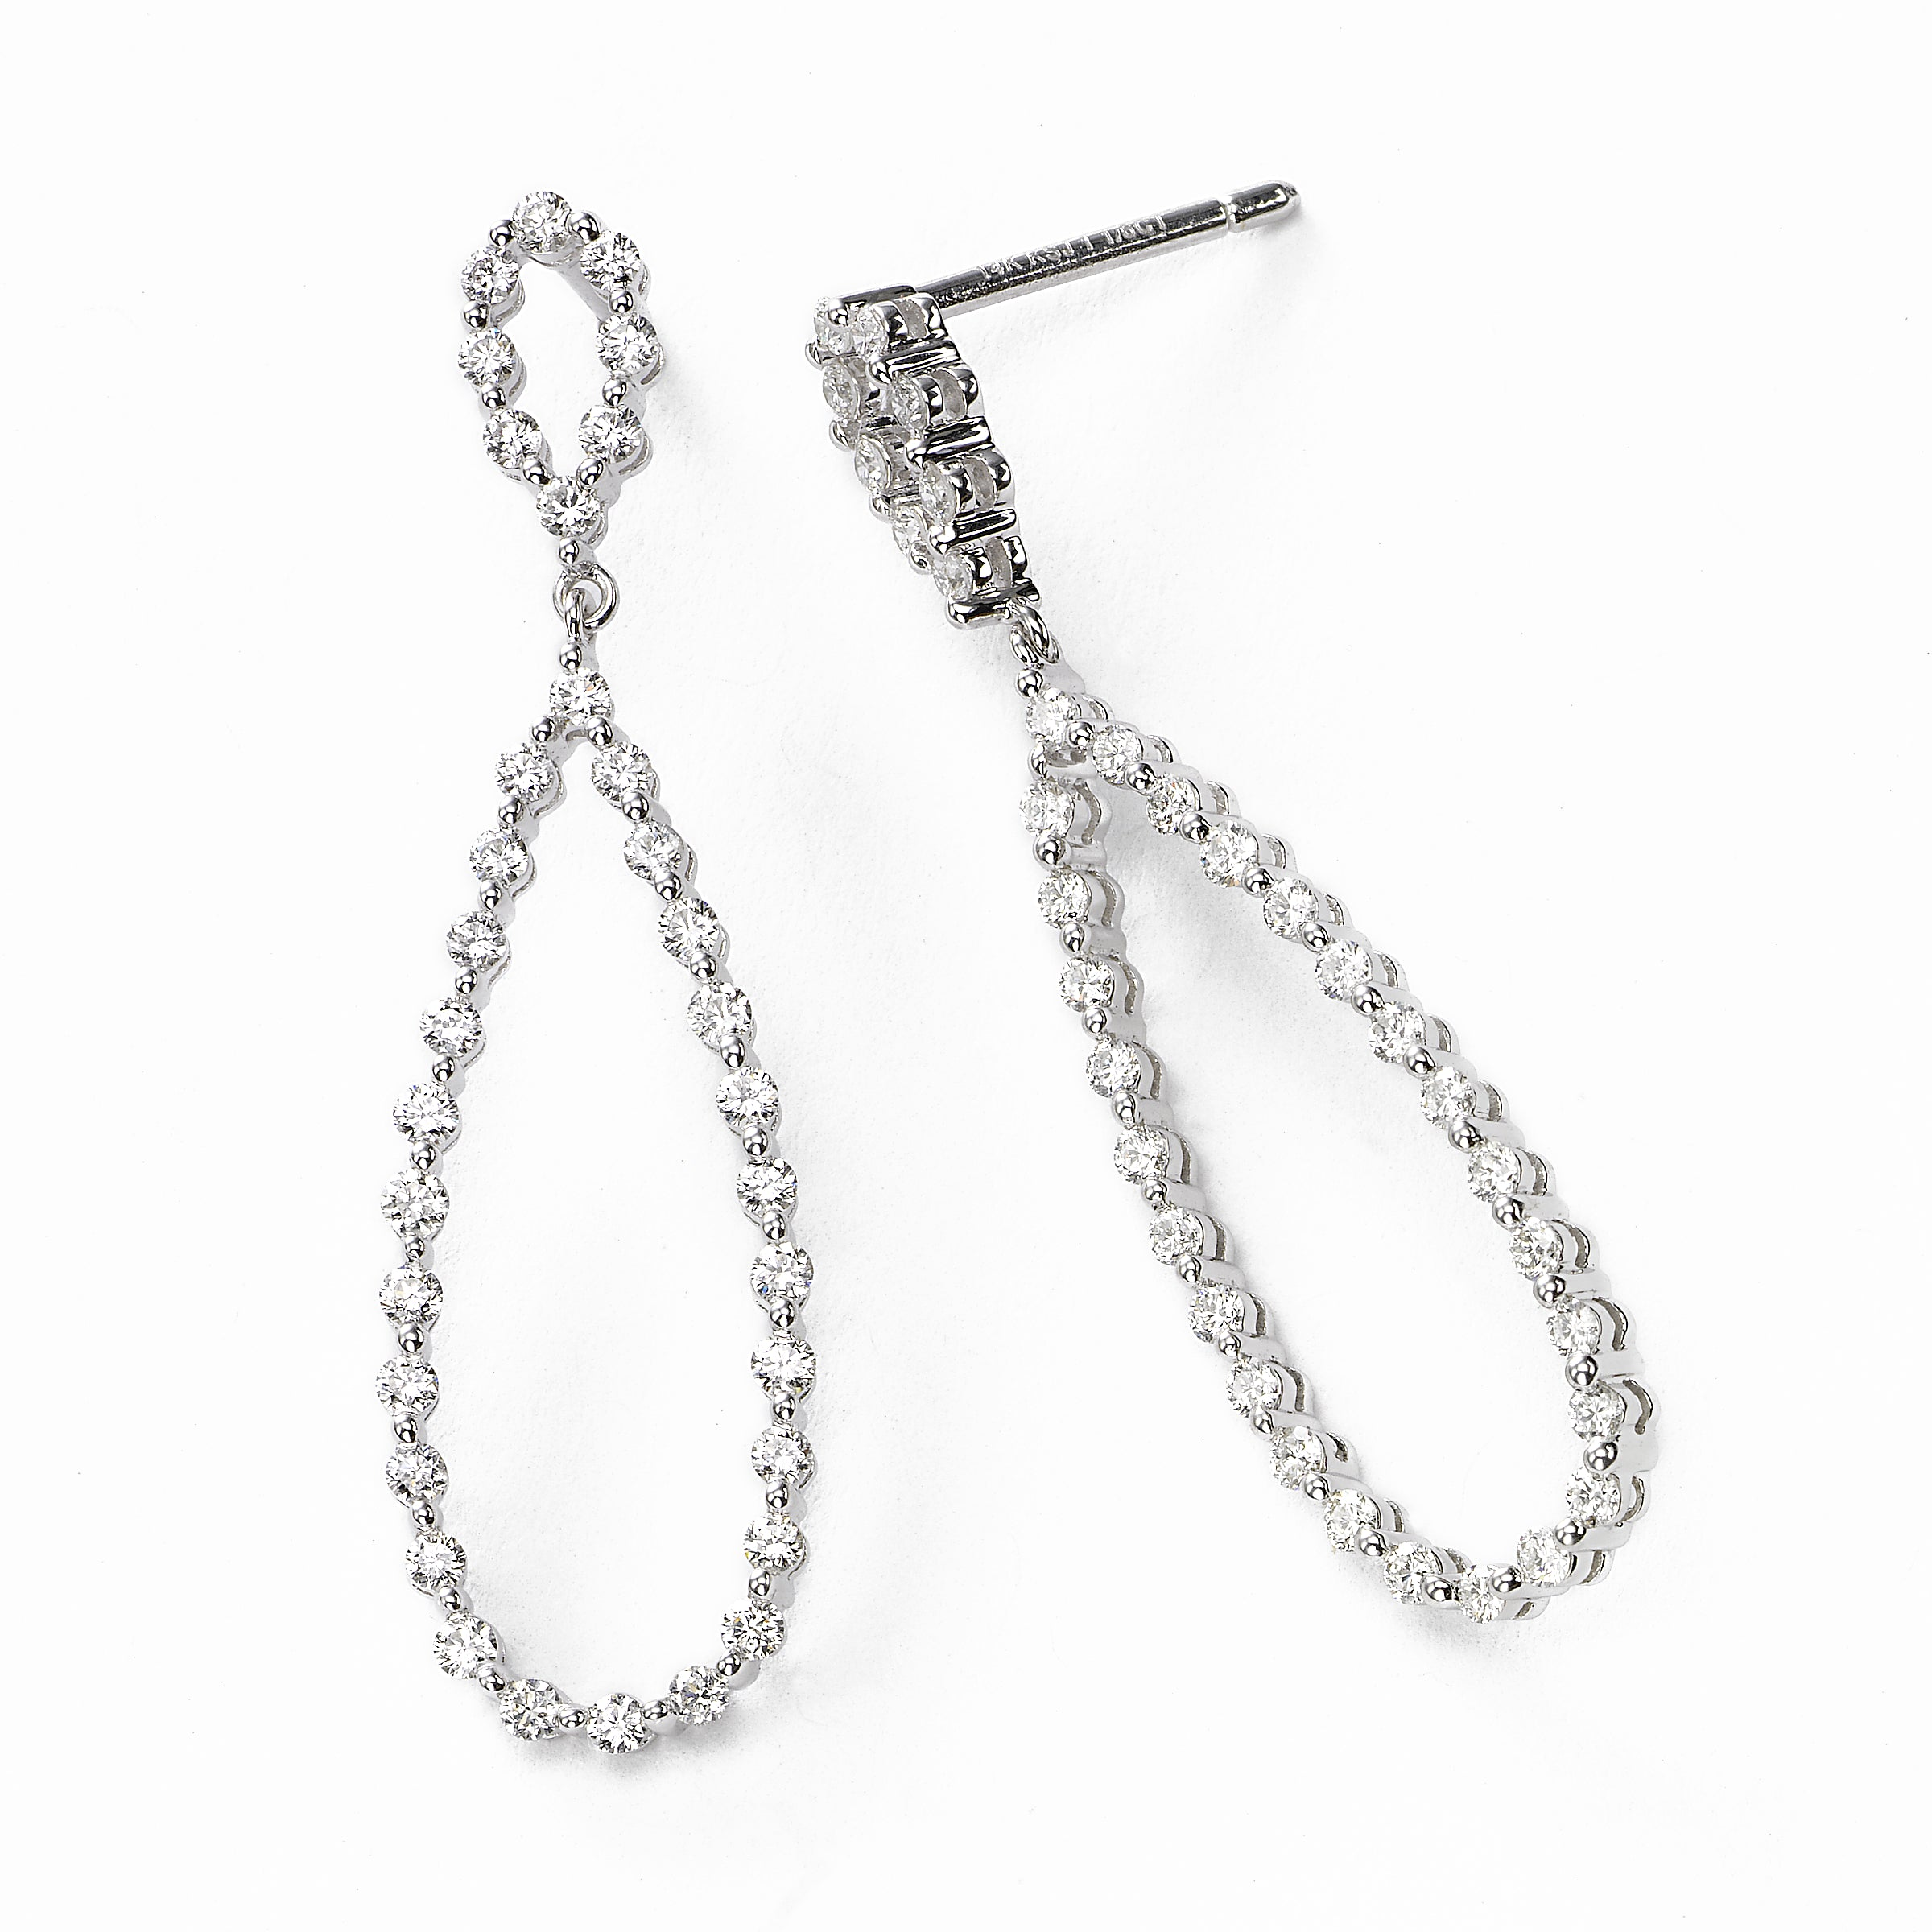 Double Loop Diamond Drop Earring, 1.22 Carat, 14KWG